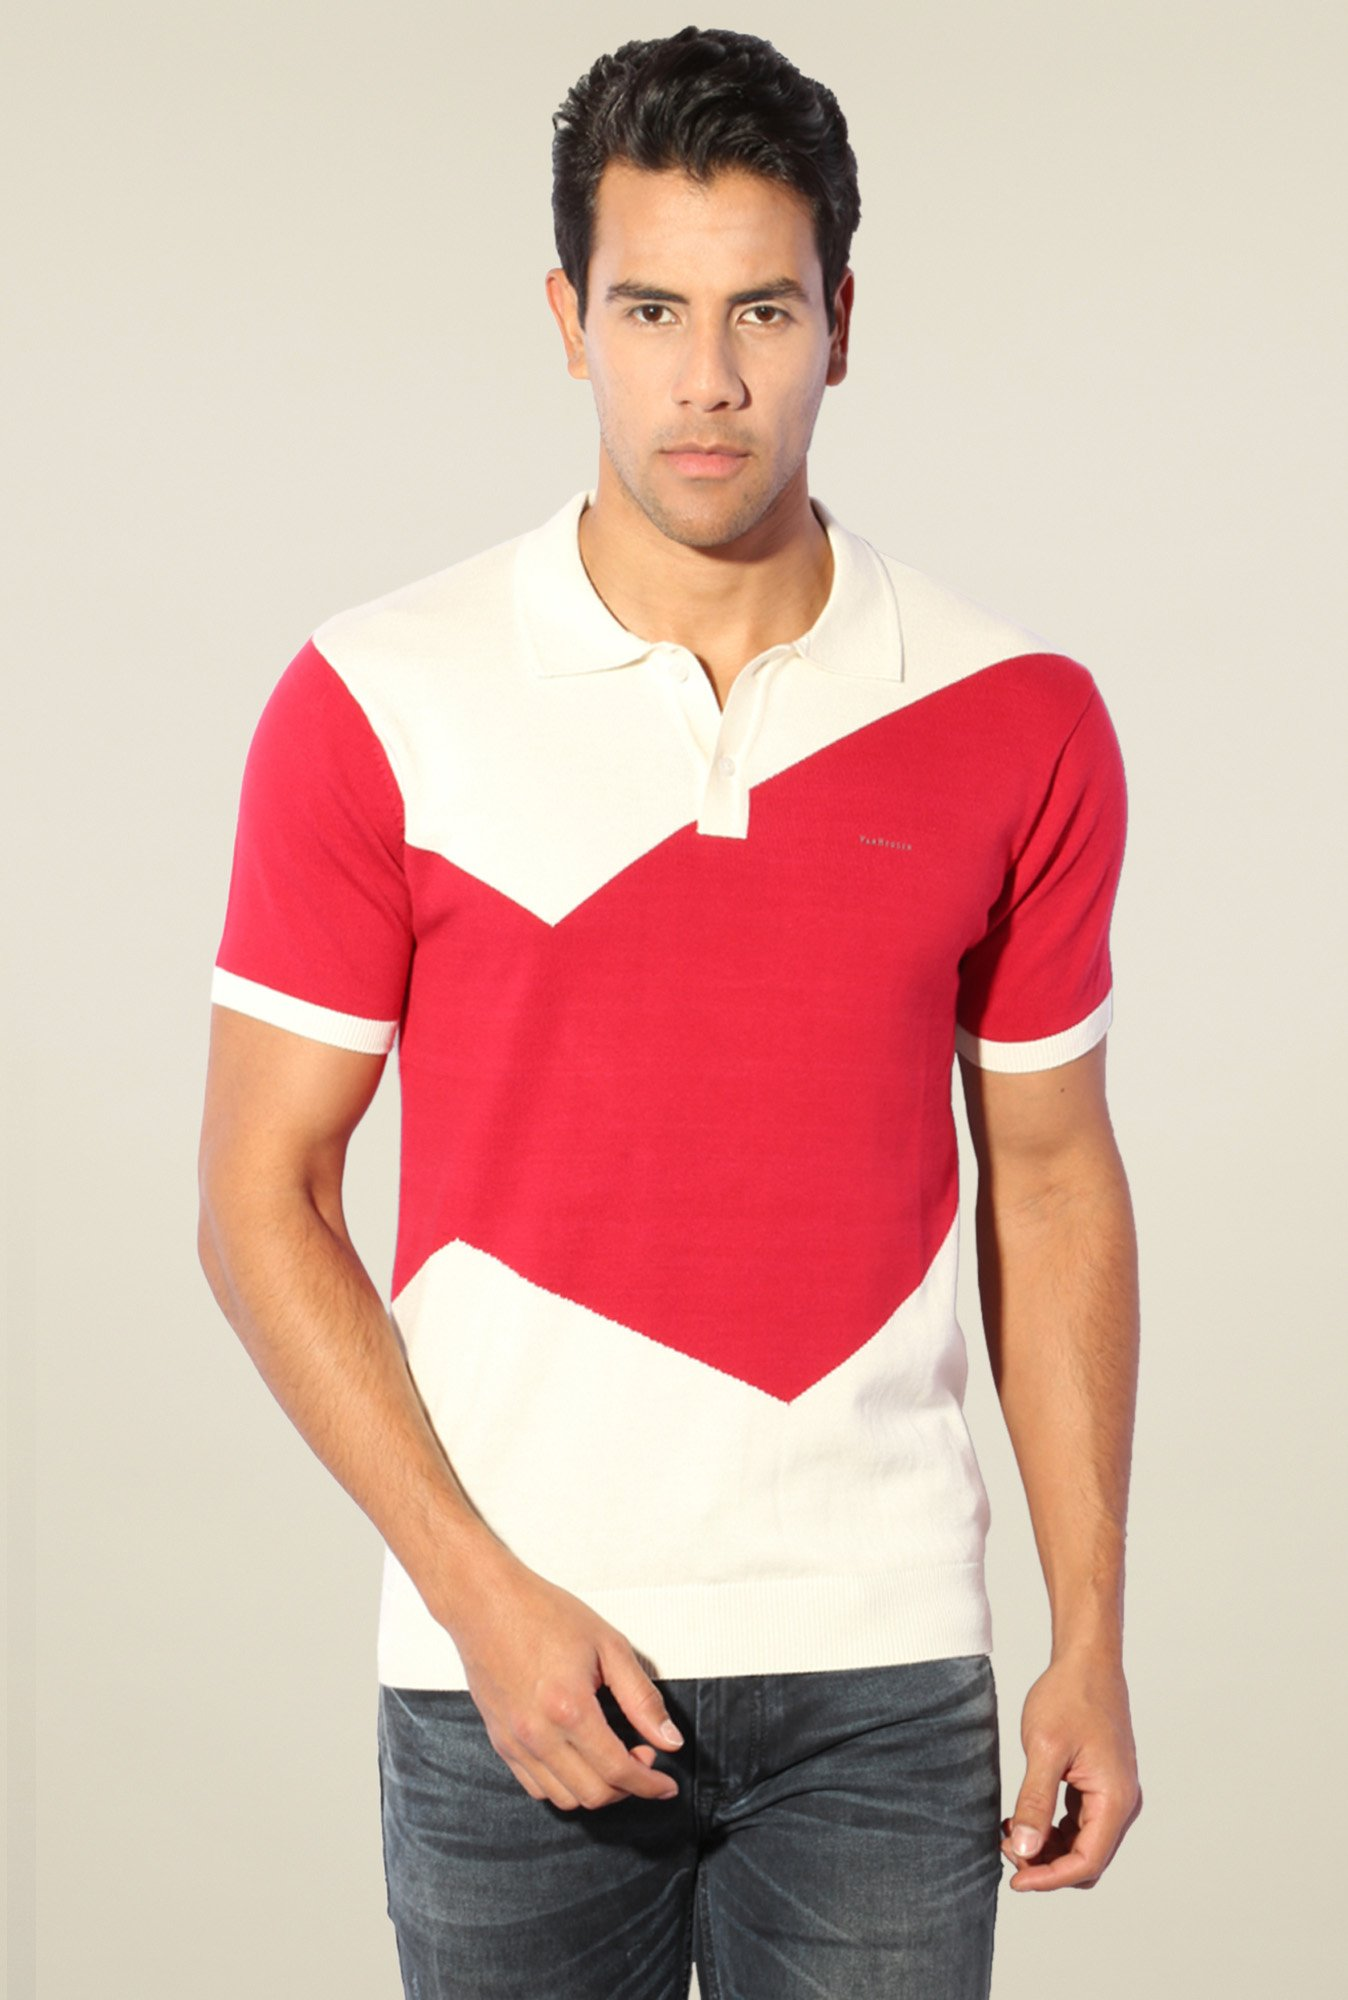 Van Heusen Pink & White Cotton Polo T-Shirt